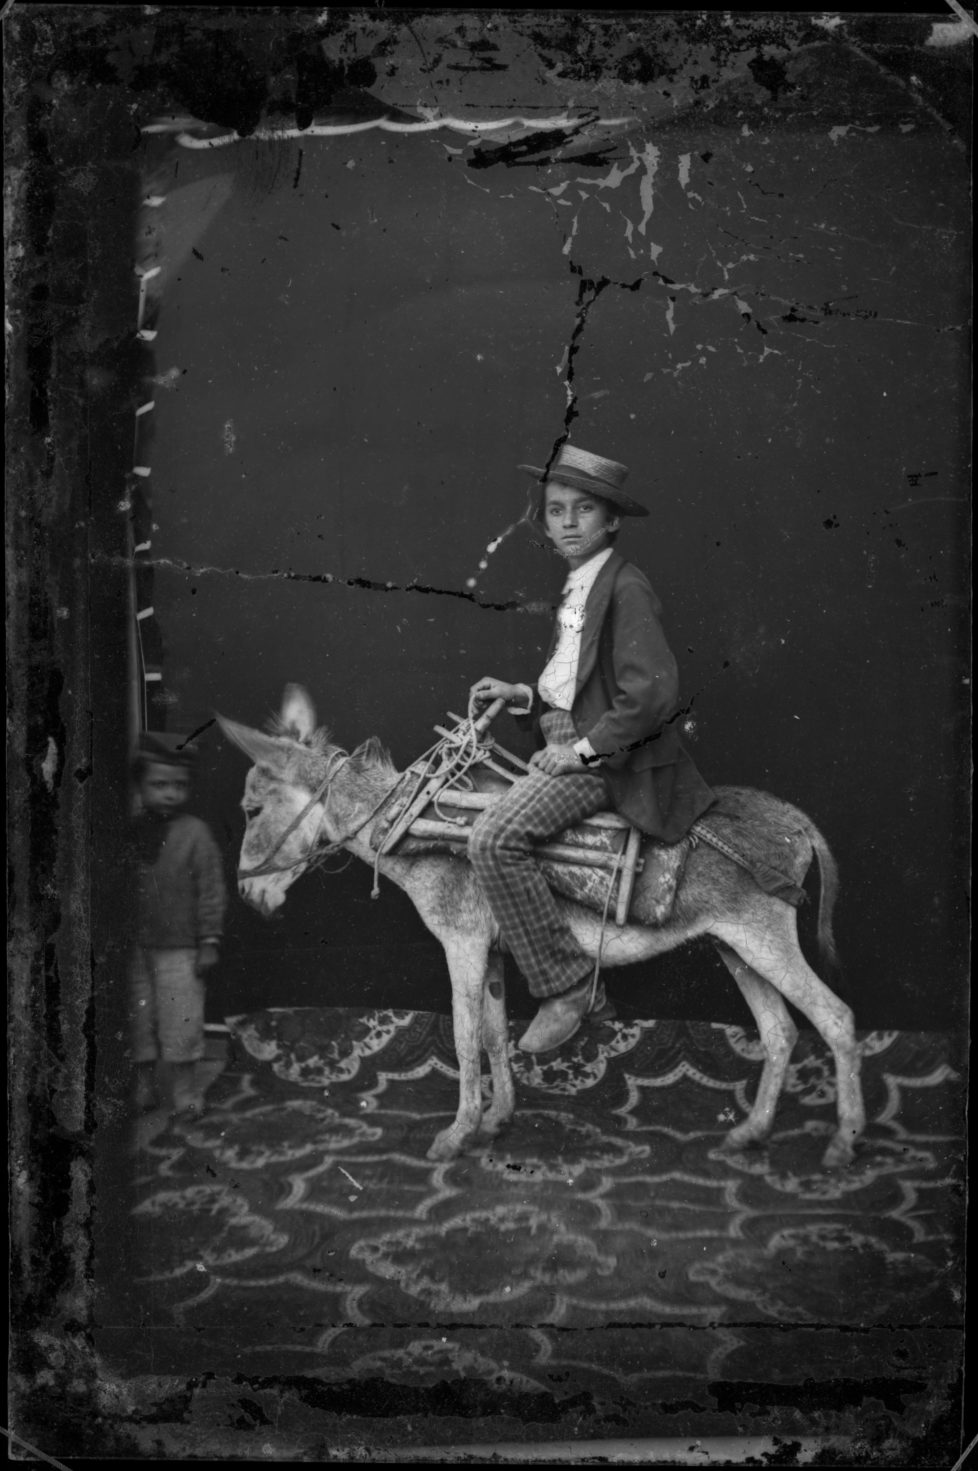 Untitled, before 1881, Pietro Marubi © Marubi National Museum of Photography, Shkodër